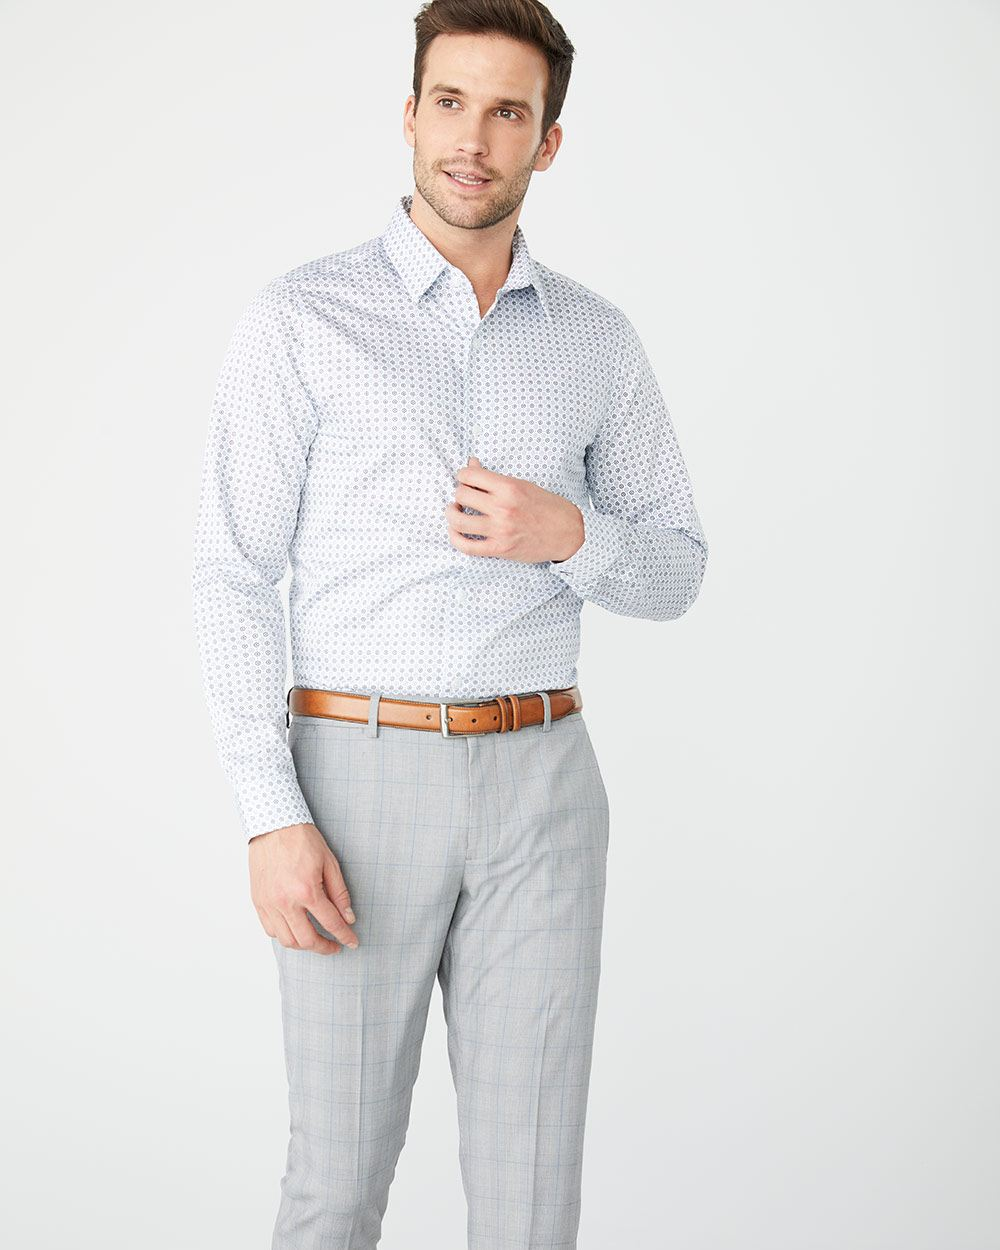 Slim Fit blue geo dot dress shirt - Short